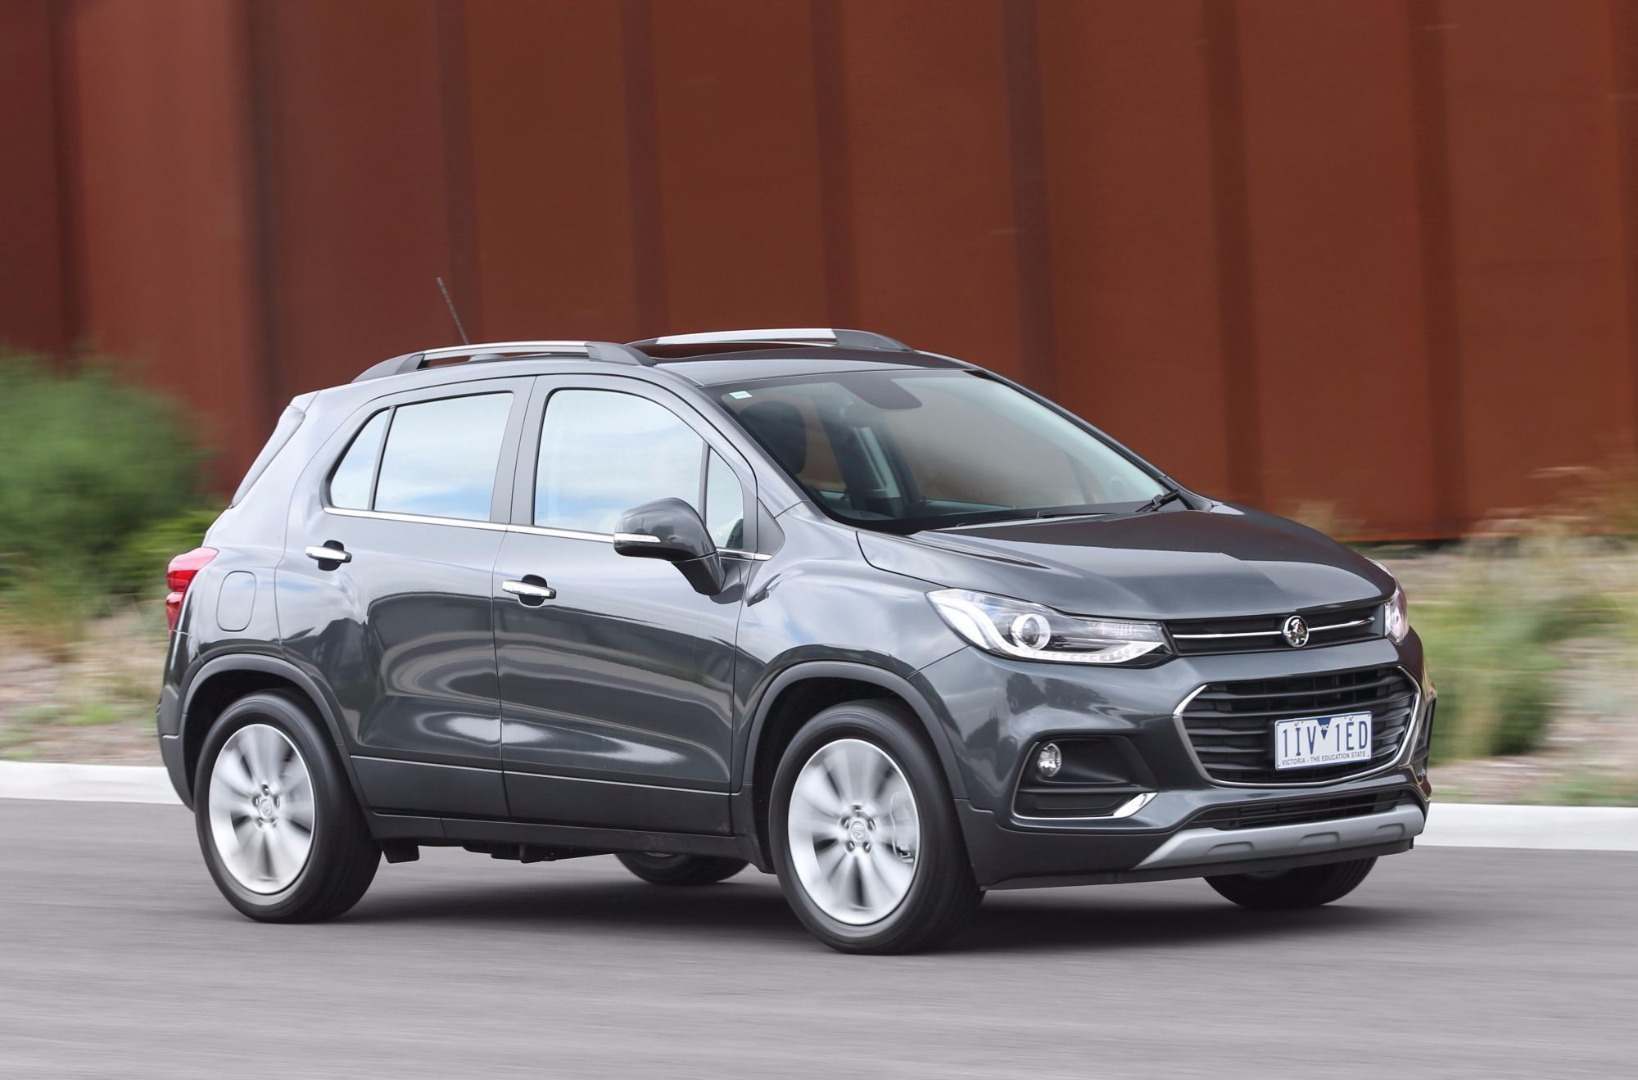 News - Holden Updates Trax For 2017